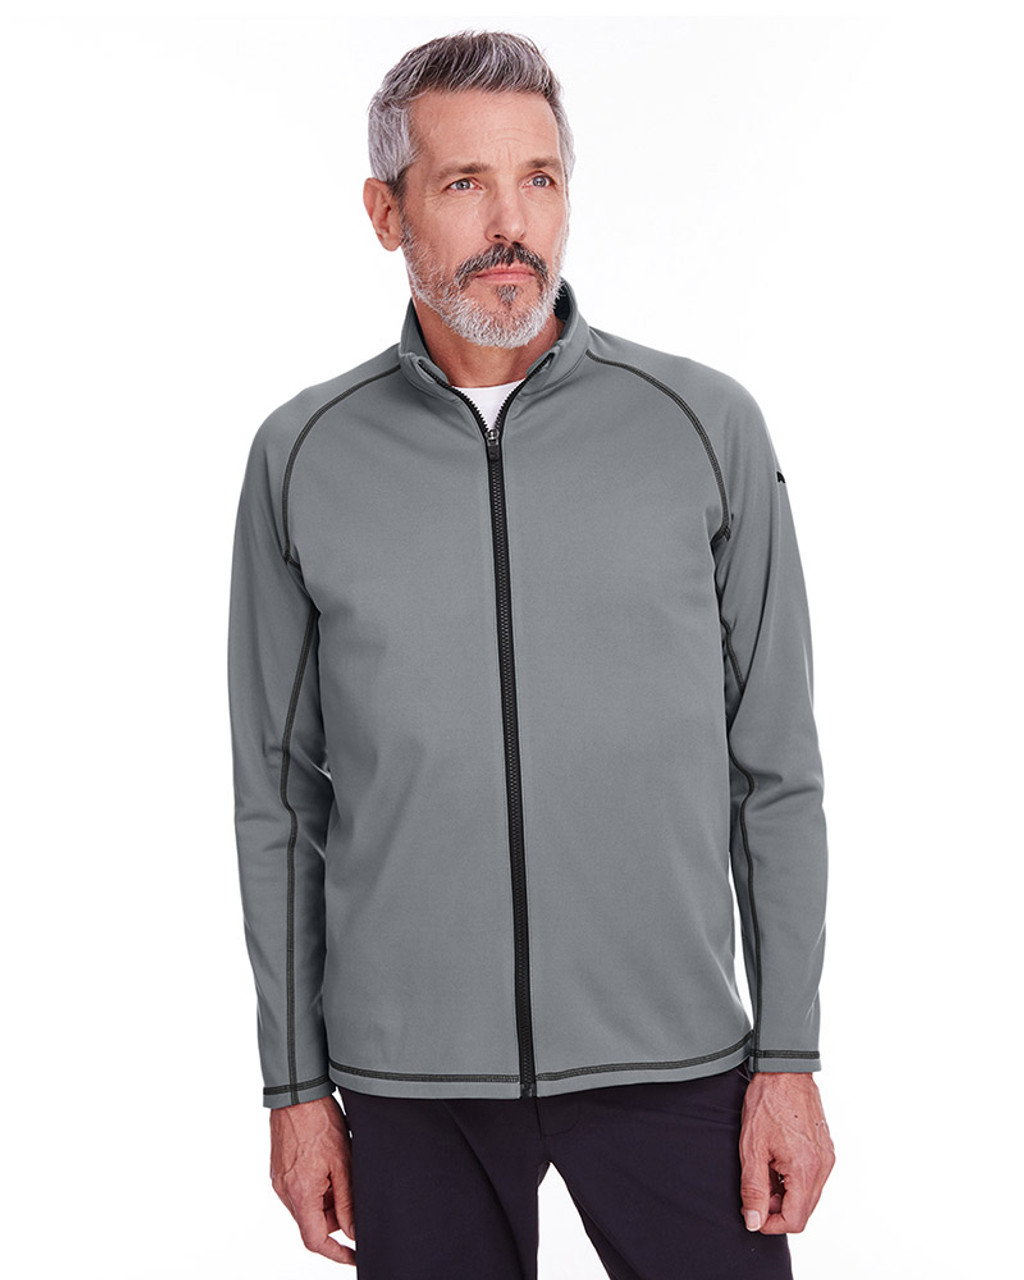 Quiet Shade - 596806 Puma Golf Men's Fairway Full-Zip Sweatshirt | Blankclothing.ca